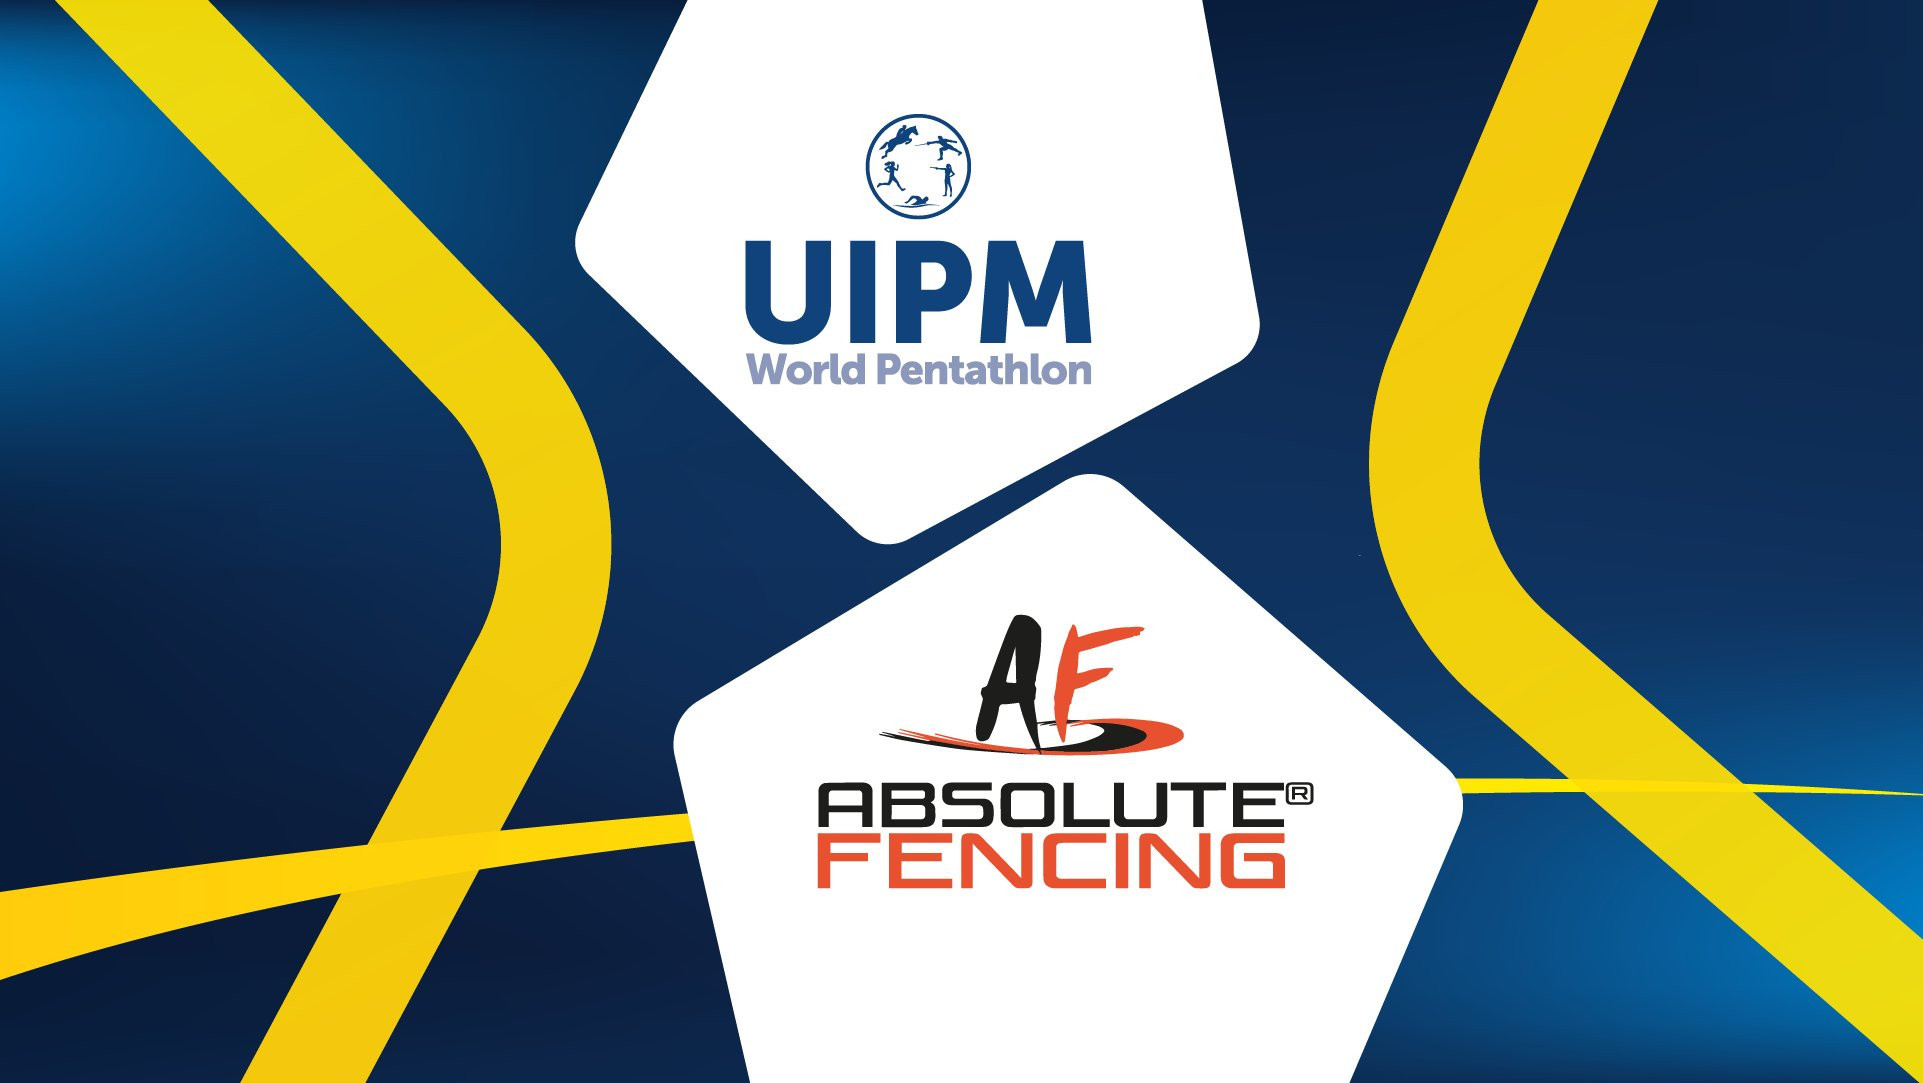 UIPM extend partnership with Absolute Fencing Gear